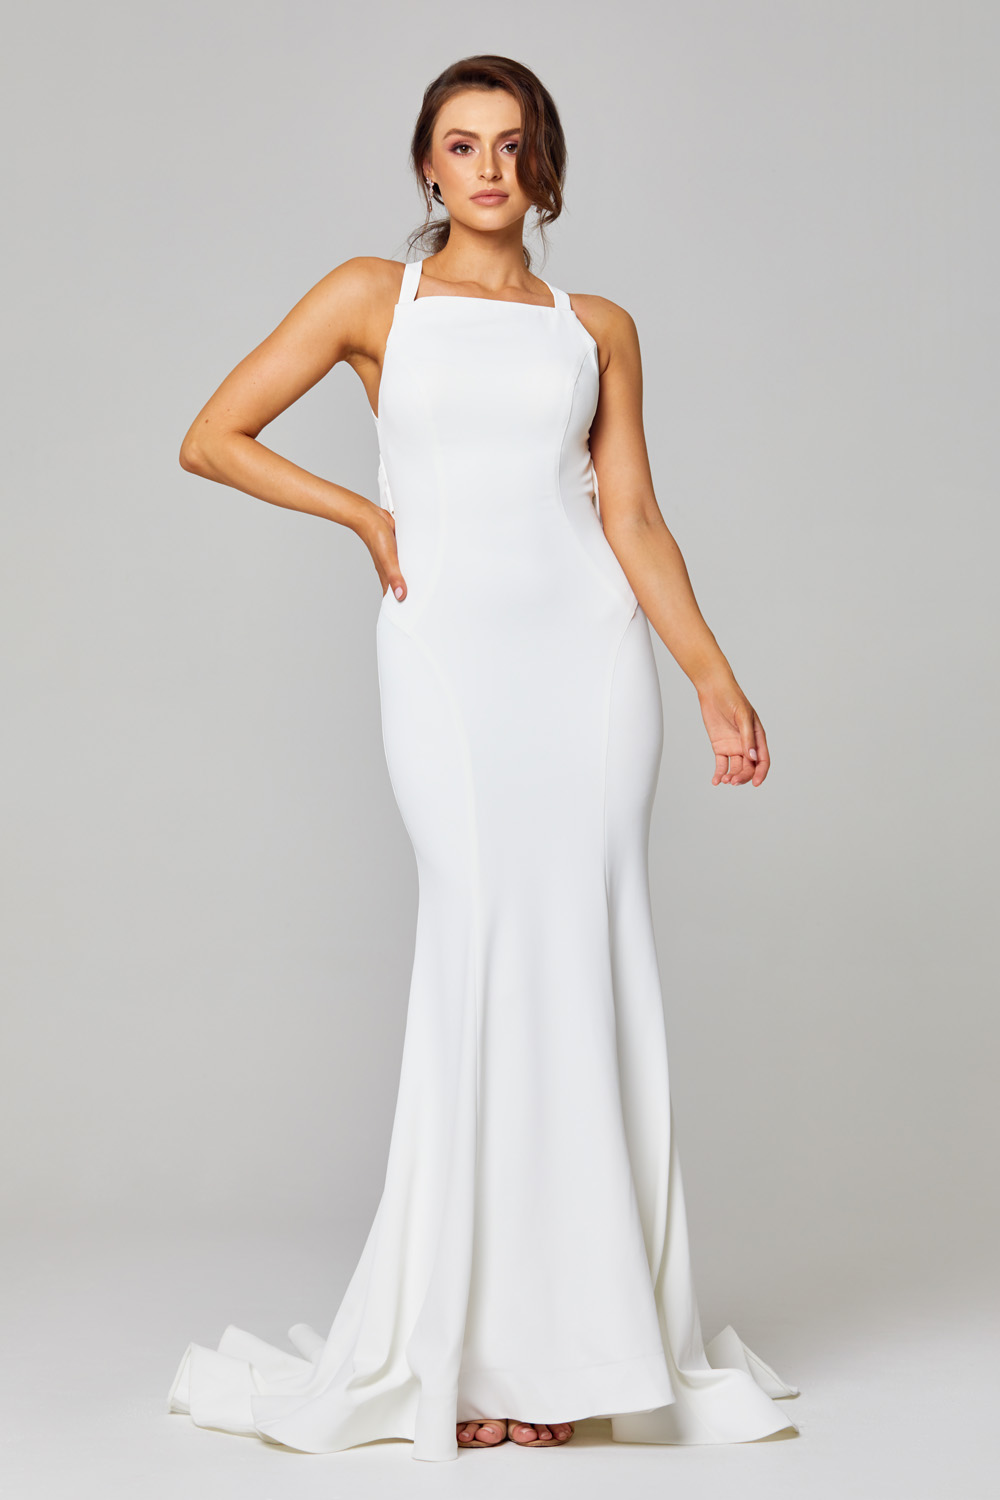 Monique Strappy Cowl Wedding Dress - TC285